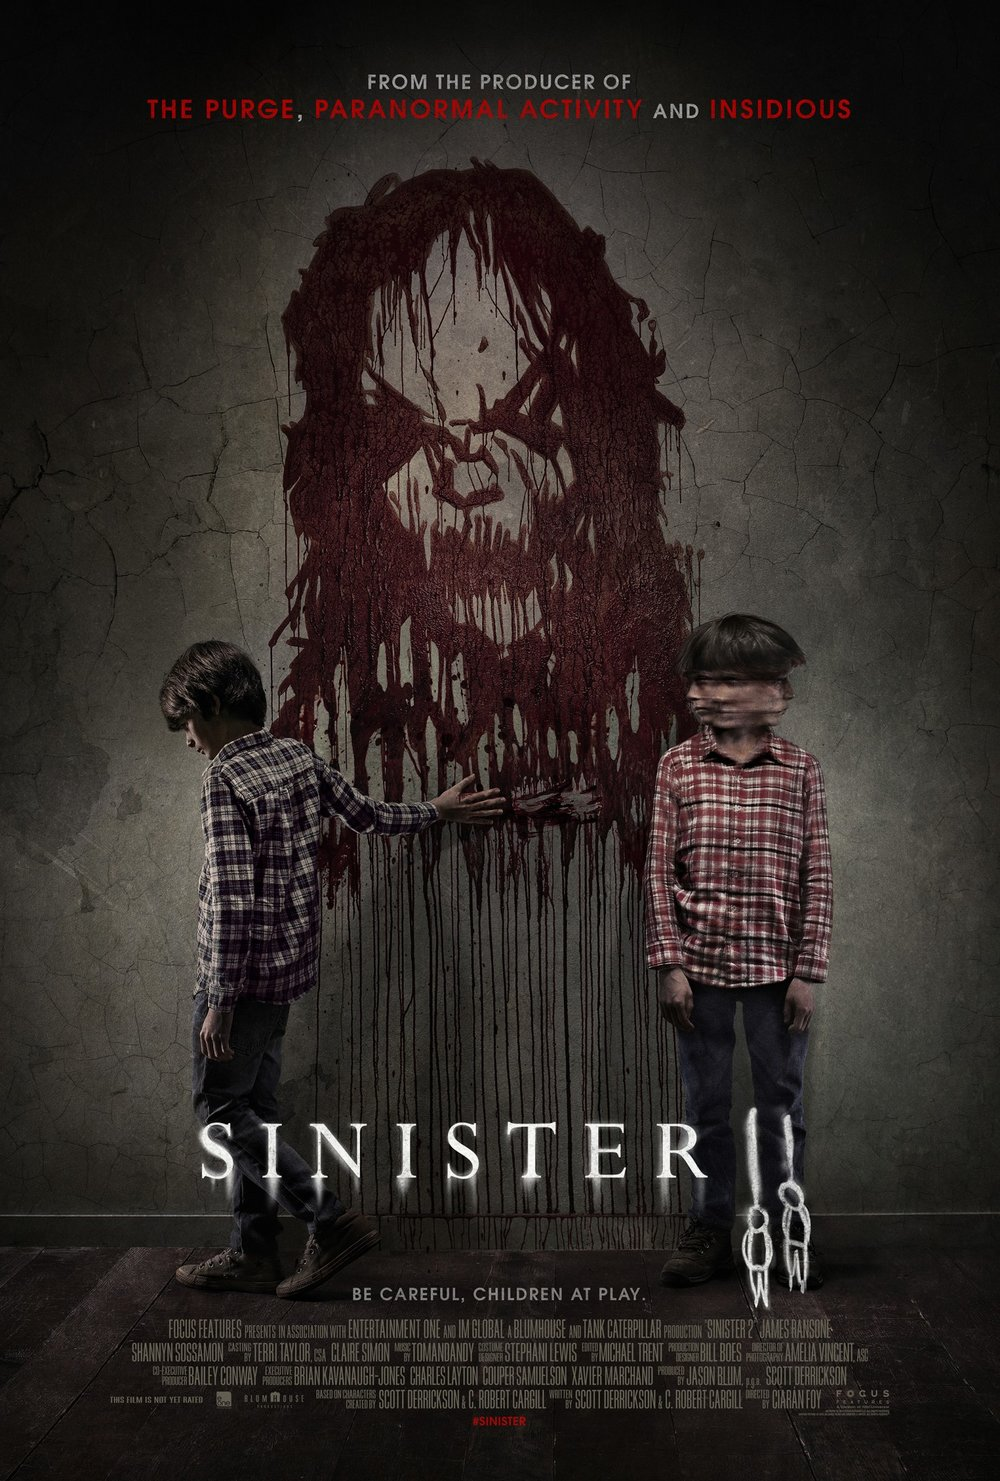 Theatrical poster for Sinister II by Gravillis Inc.